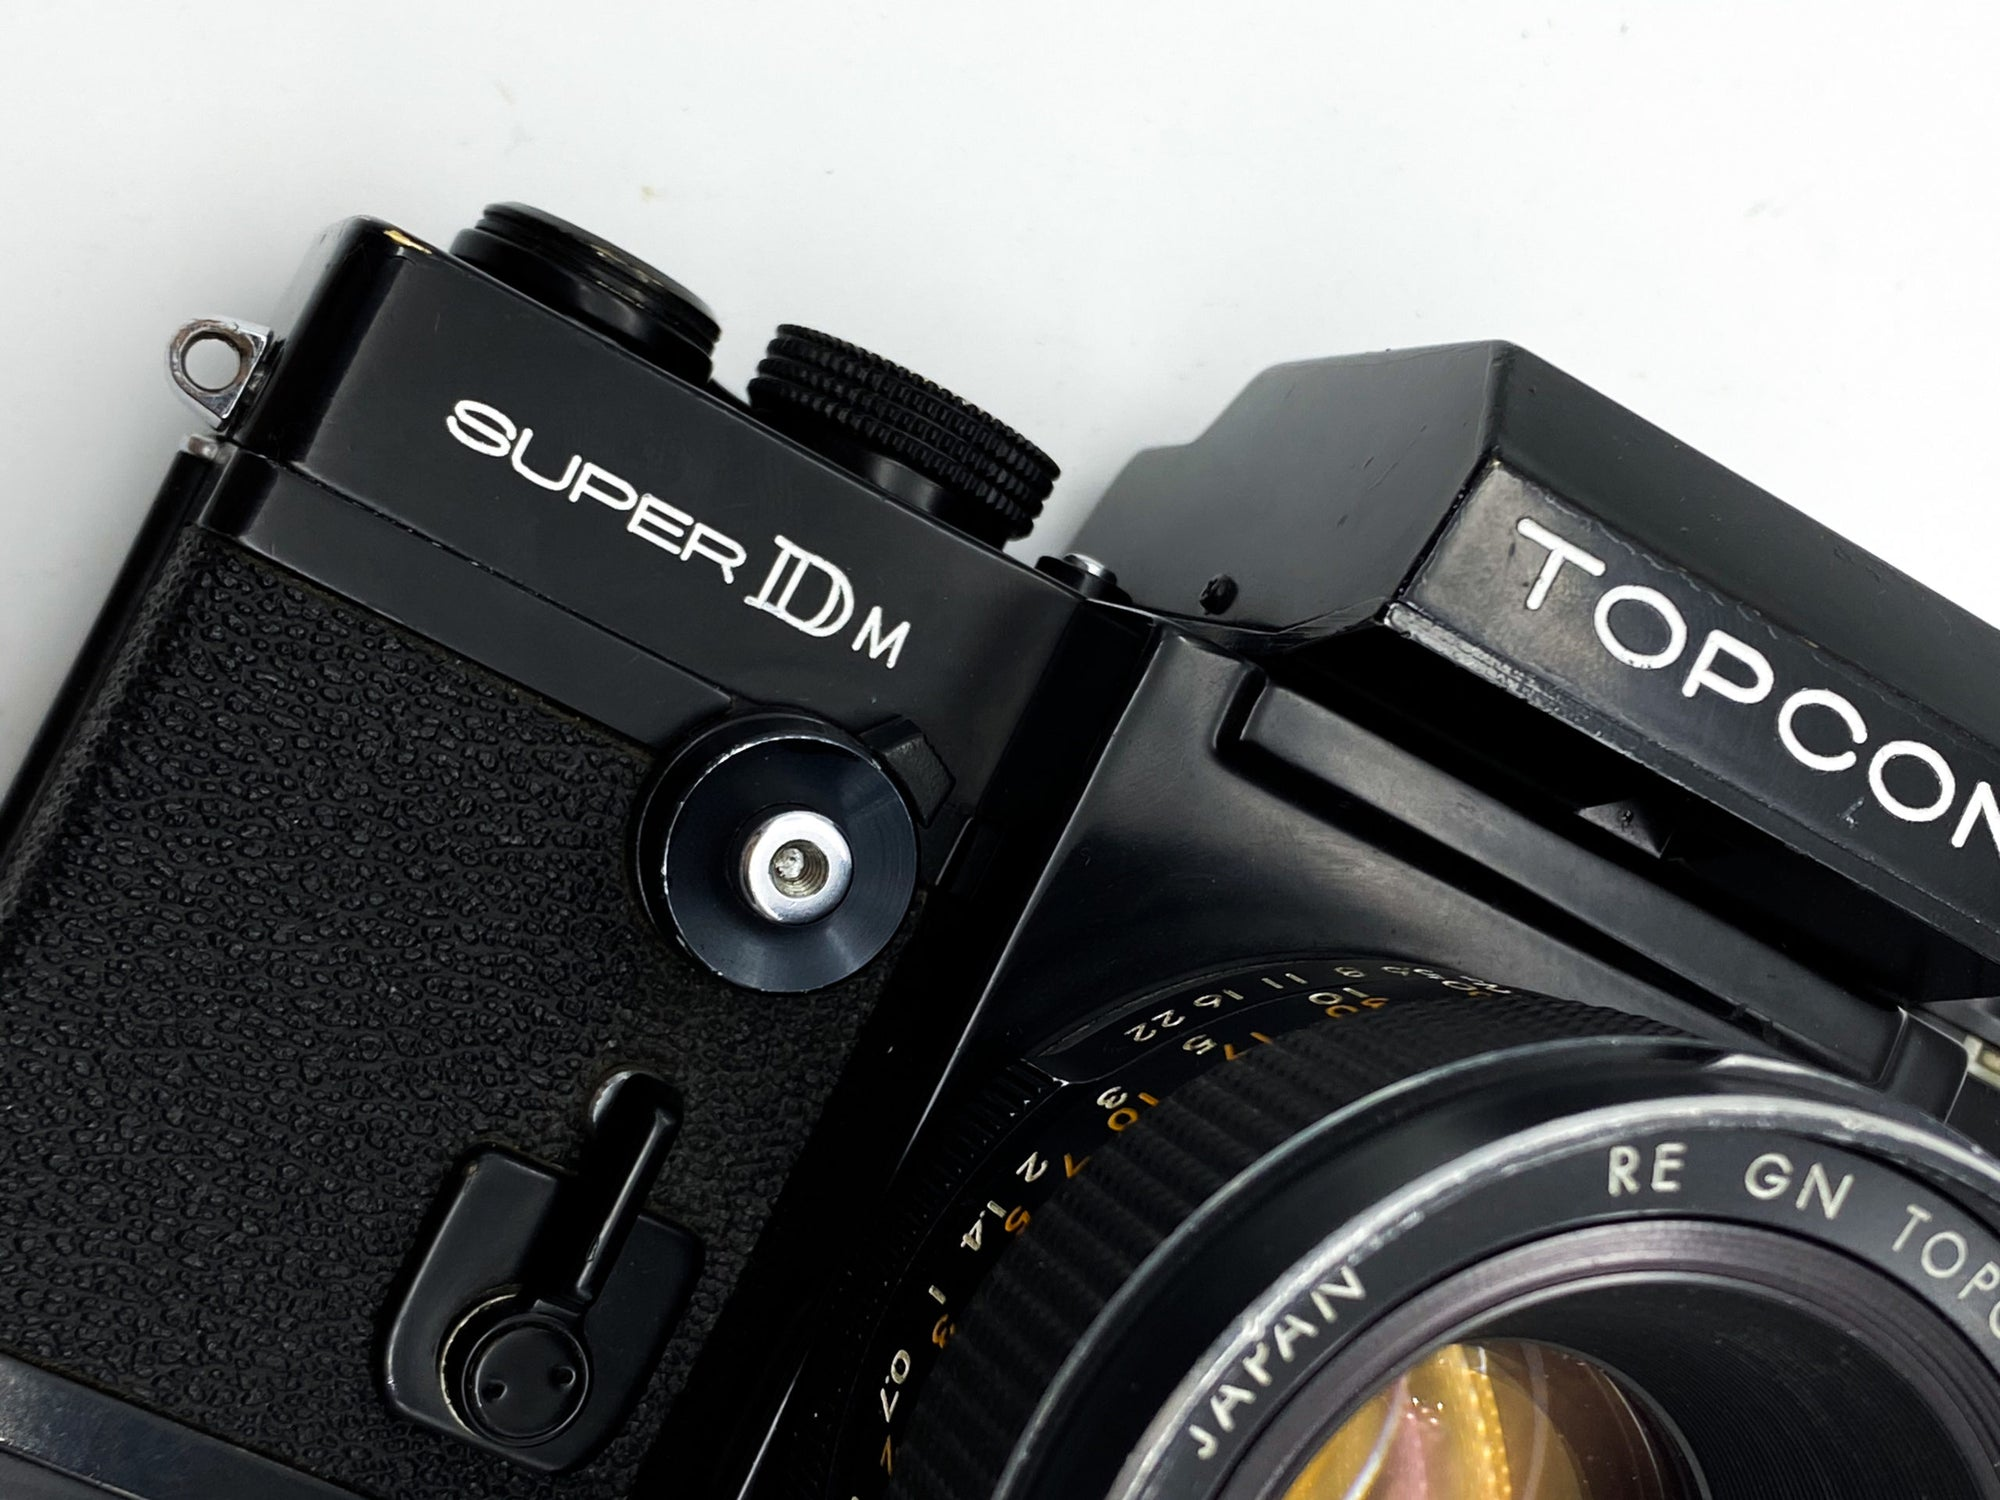 Two broke boys review: The Topcon Super DM, a forgotten pro-camera.